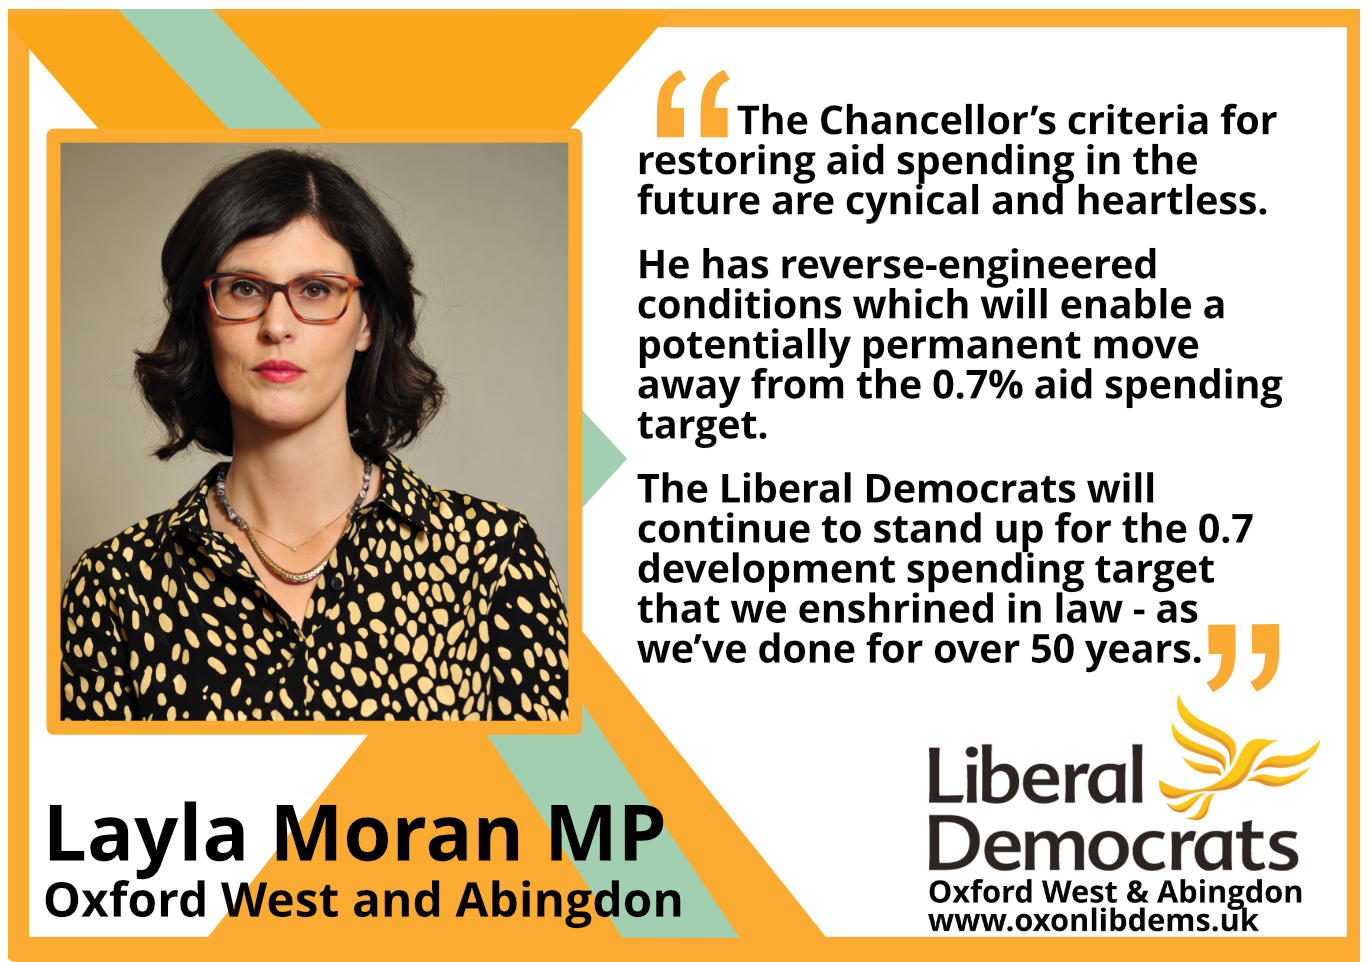 key_The Liberal Democrats will continue to stand up for the 0.7 development spending target that we enshrined in law - as we've done for over 50 years